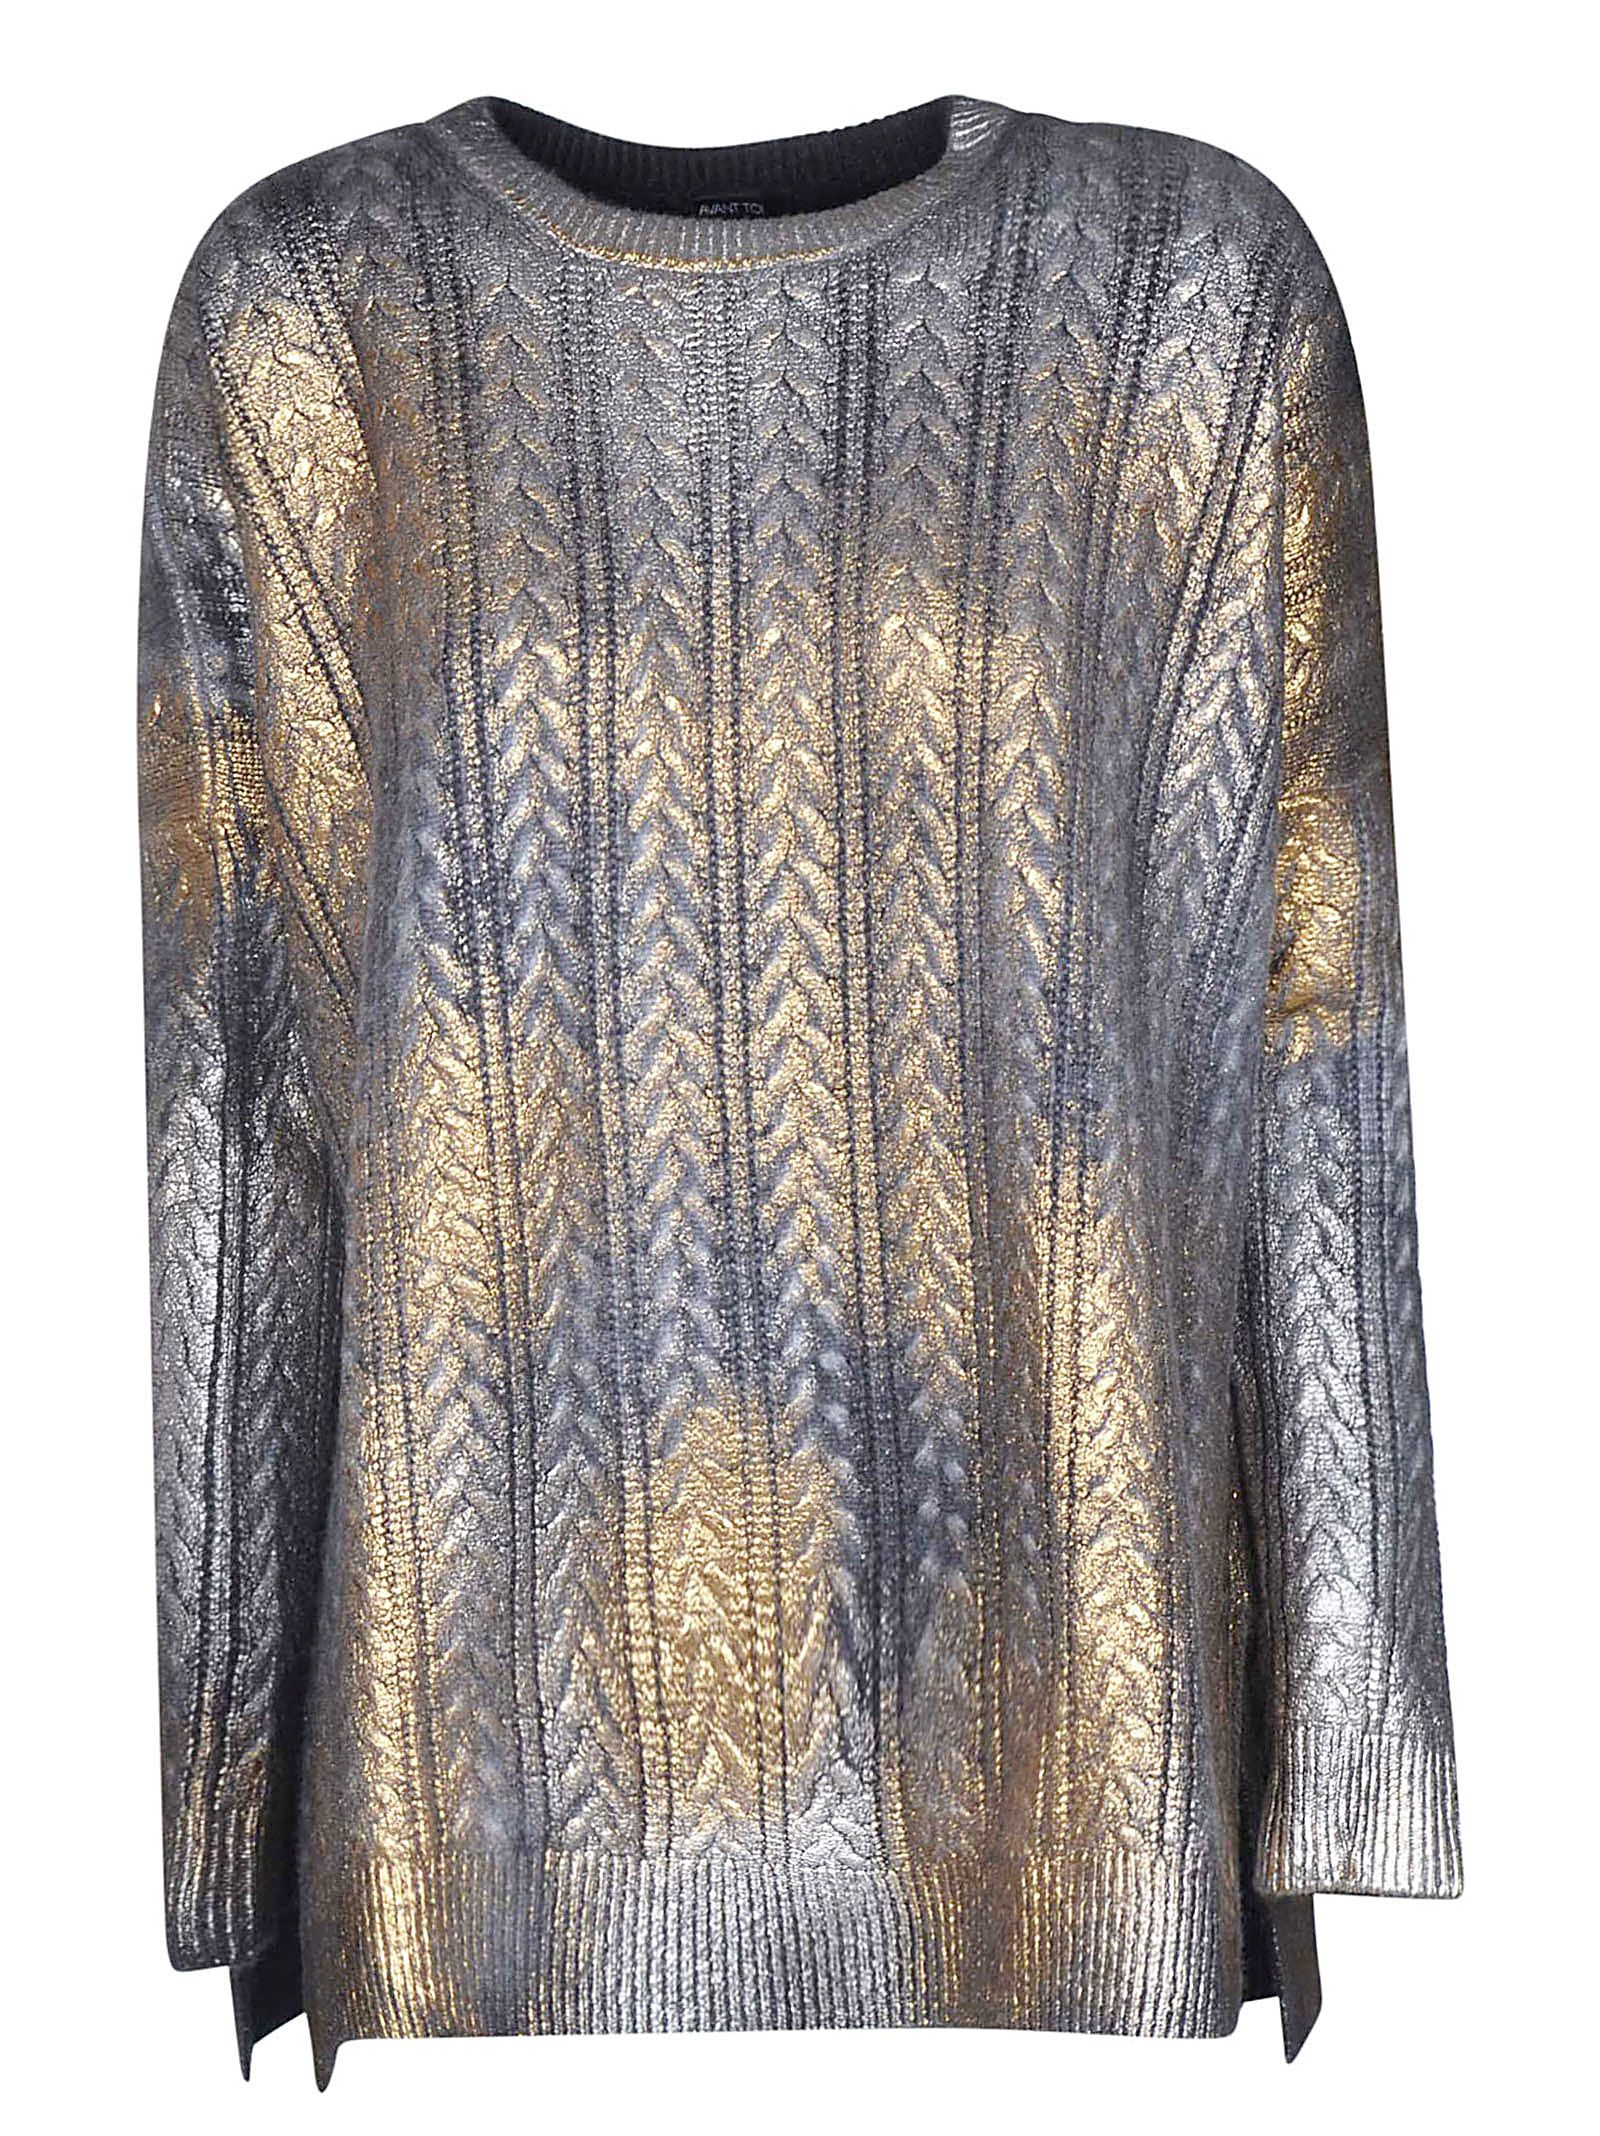 Avant Toi Metallic Cable Knit Sweater In Silver Gold  5d46ca3ec